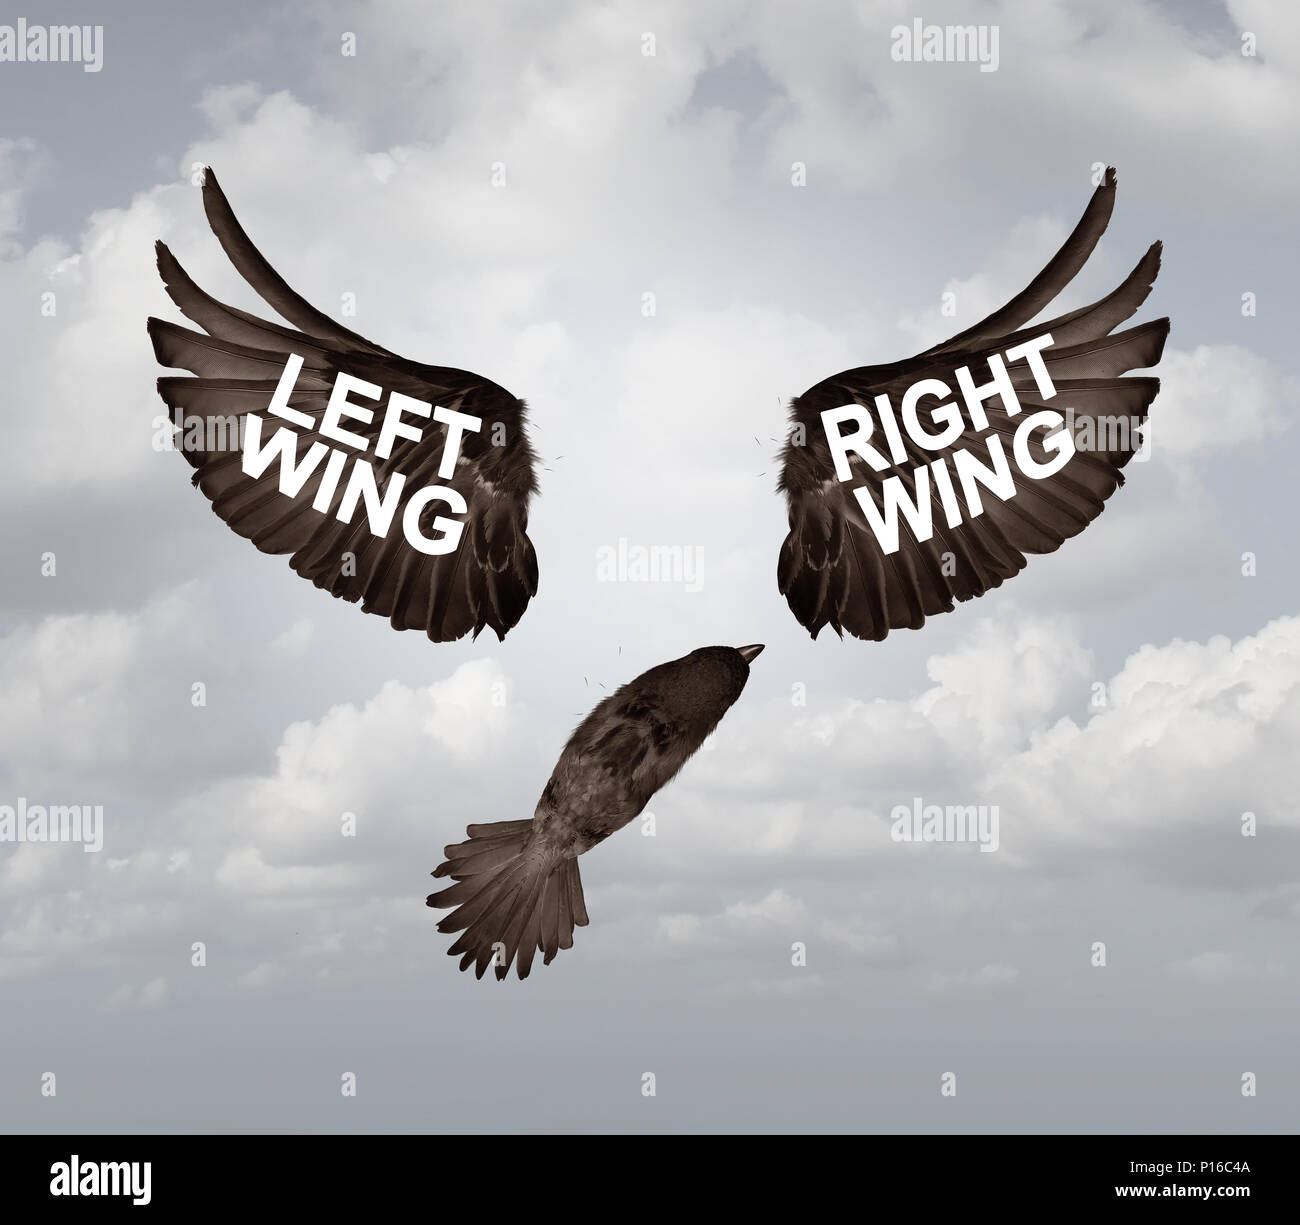 Political crisis as a destructive right wing and left wing political problem and ideology divided mentality crisis as tribal opposition. - Stock Image